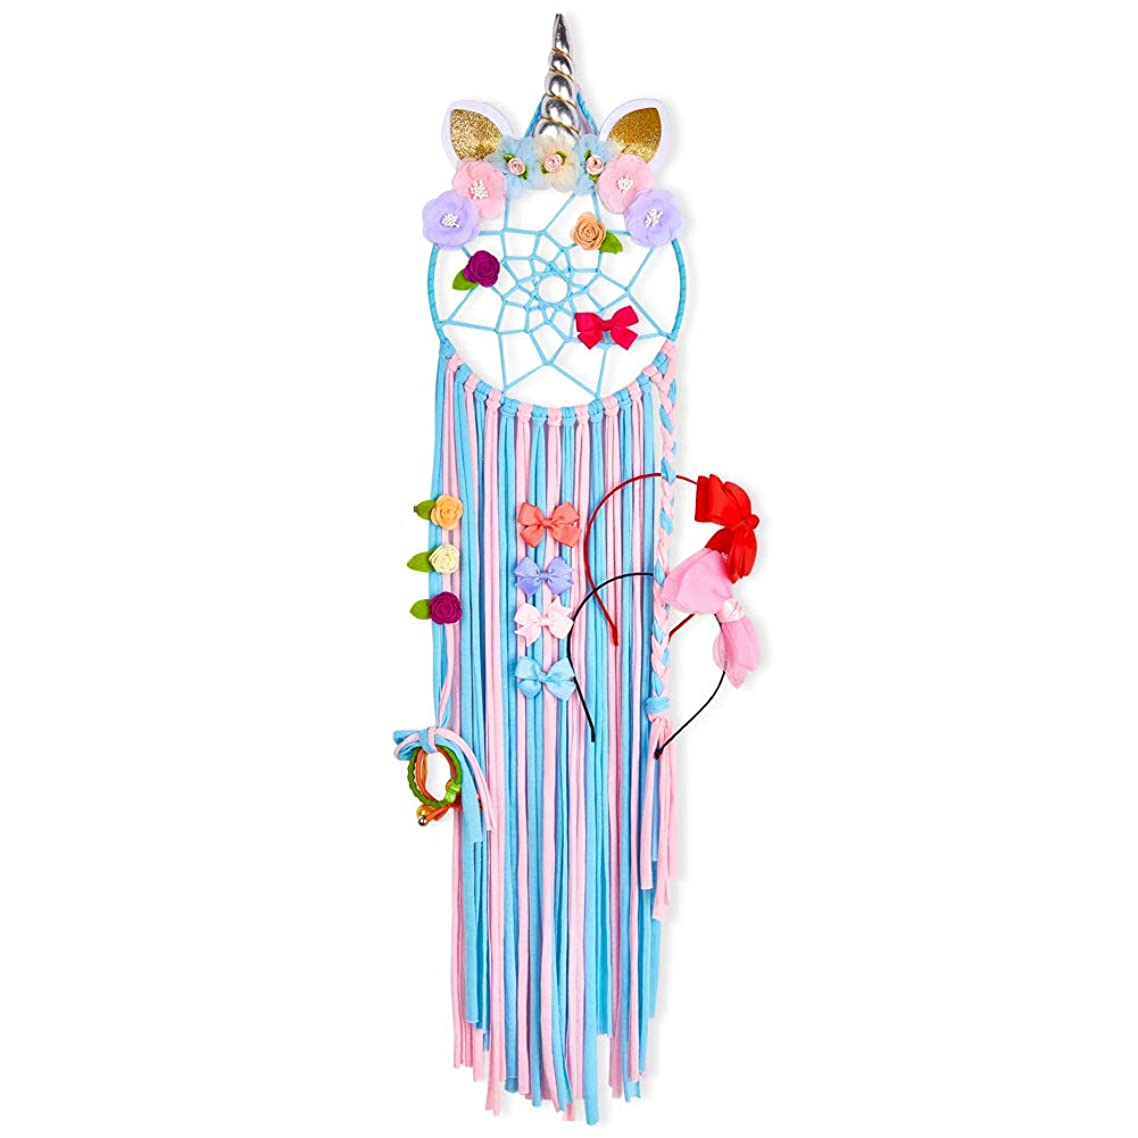 Beinou Hair Bow Holder Unicorn Headband Holder Hair Clips Organizer Metal Hoop Hairbow Hanger Alligater Clips Hair Accessories Storage Hair Barrettes Organizer (Blue and Pink)